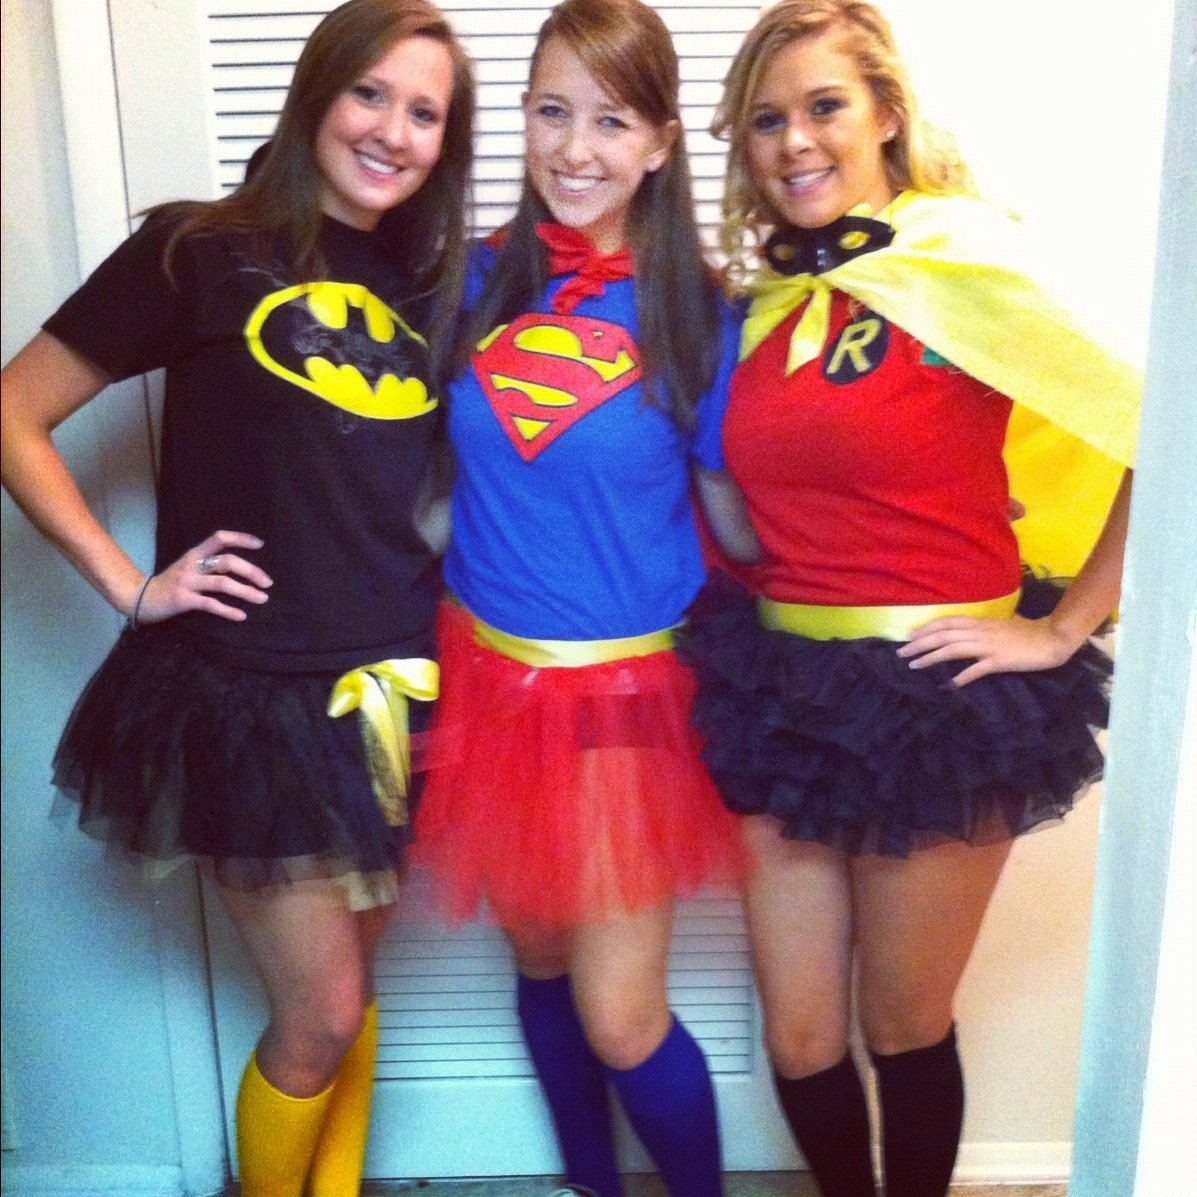 10 Fantastic Halloween Costume Ideas For Three Girls superhero 2016 halloween costumes ideas for everyone halloween